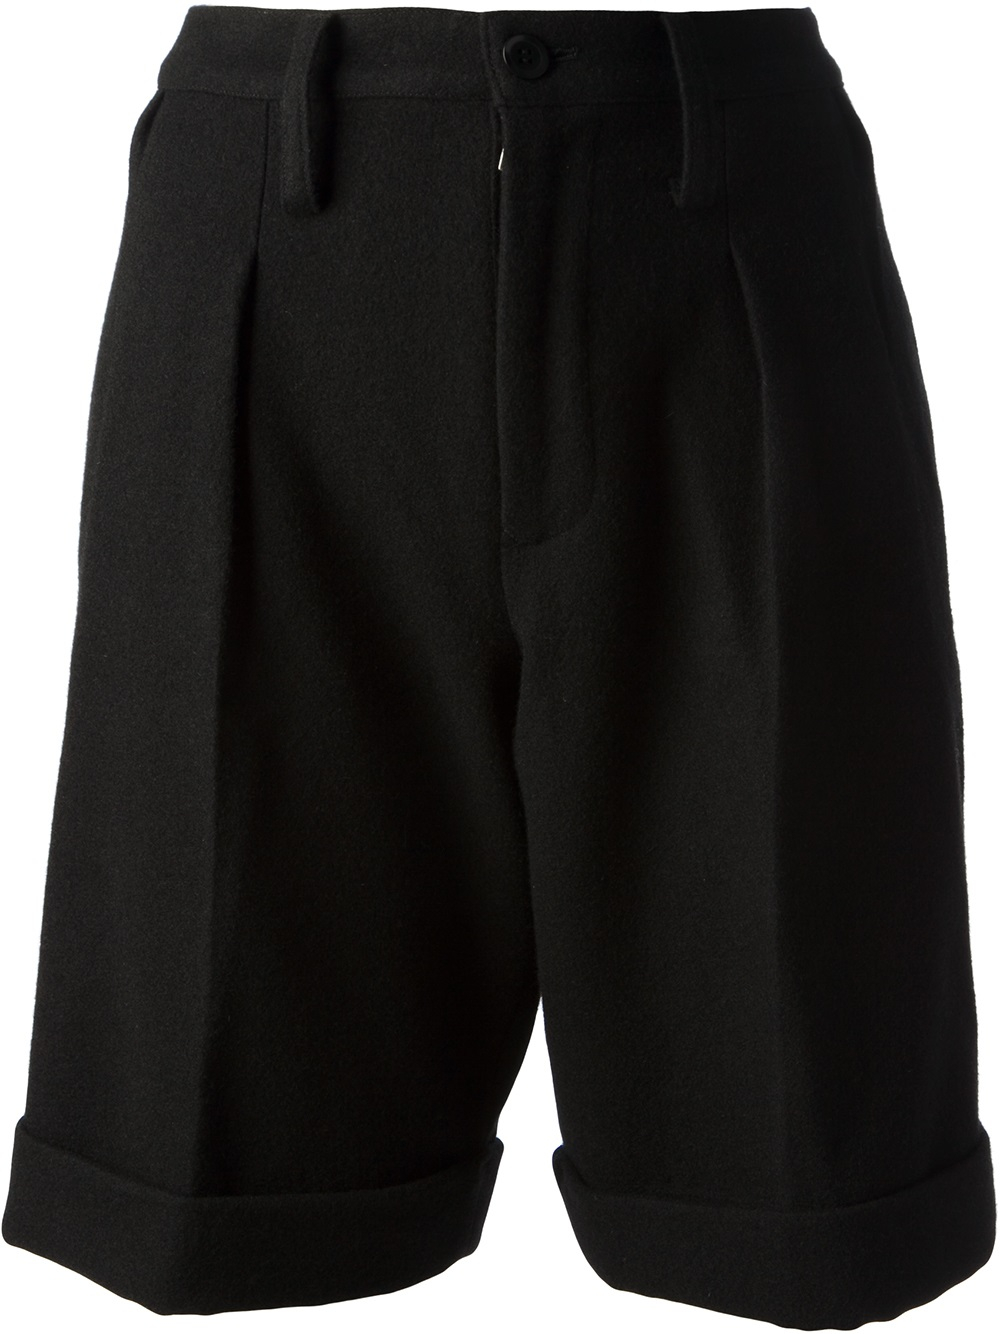 short black pants - Pi Pants